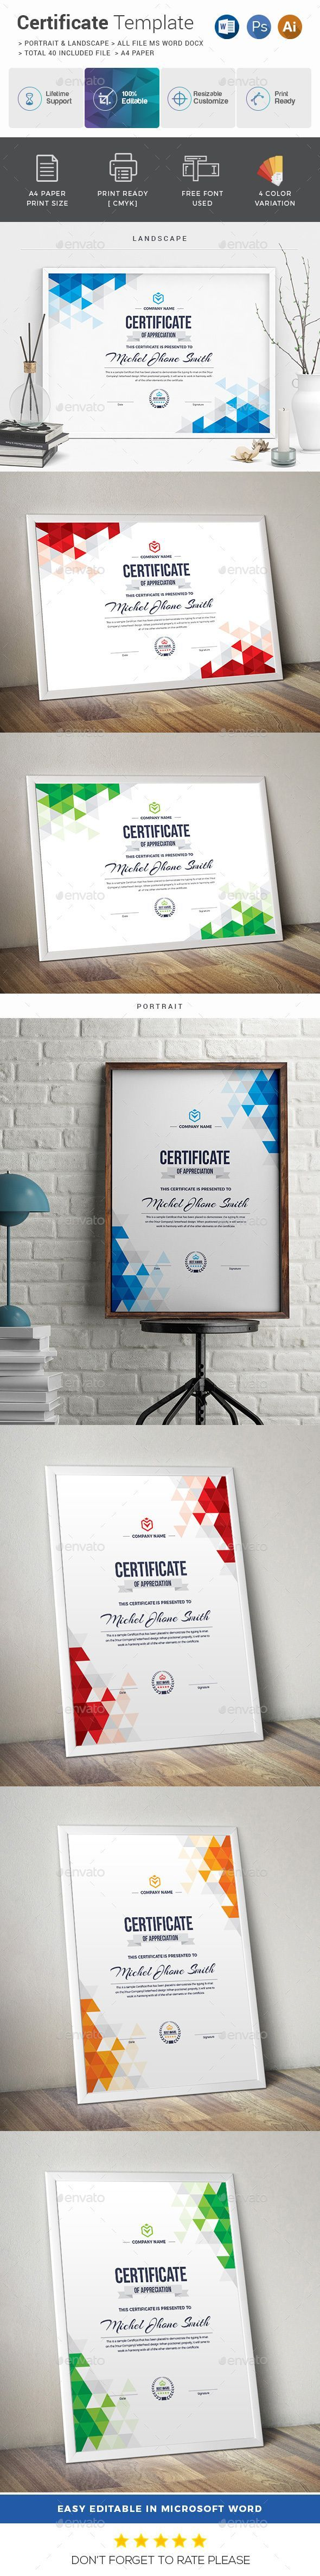 Certificate  Features of Certificate Template      Color Versions     A4 Paper Size With Bleeds     Quick and easy to customize templates     Change Customize easily in MS WORD, PSD & Illustrator     Landscape & Portrait files